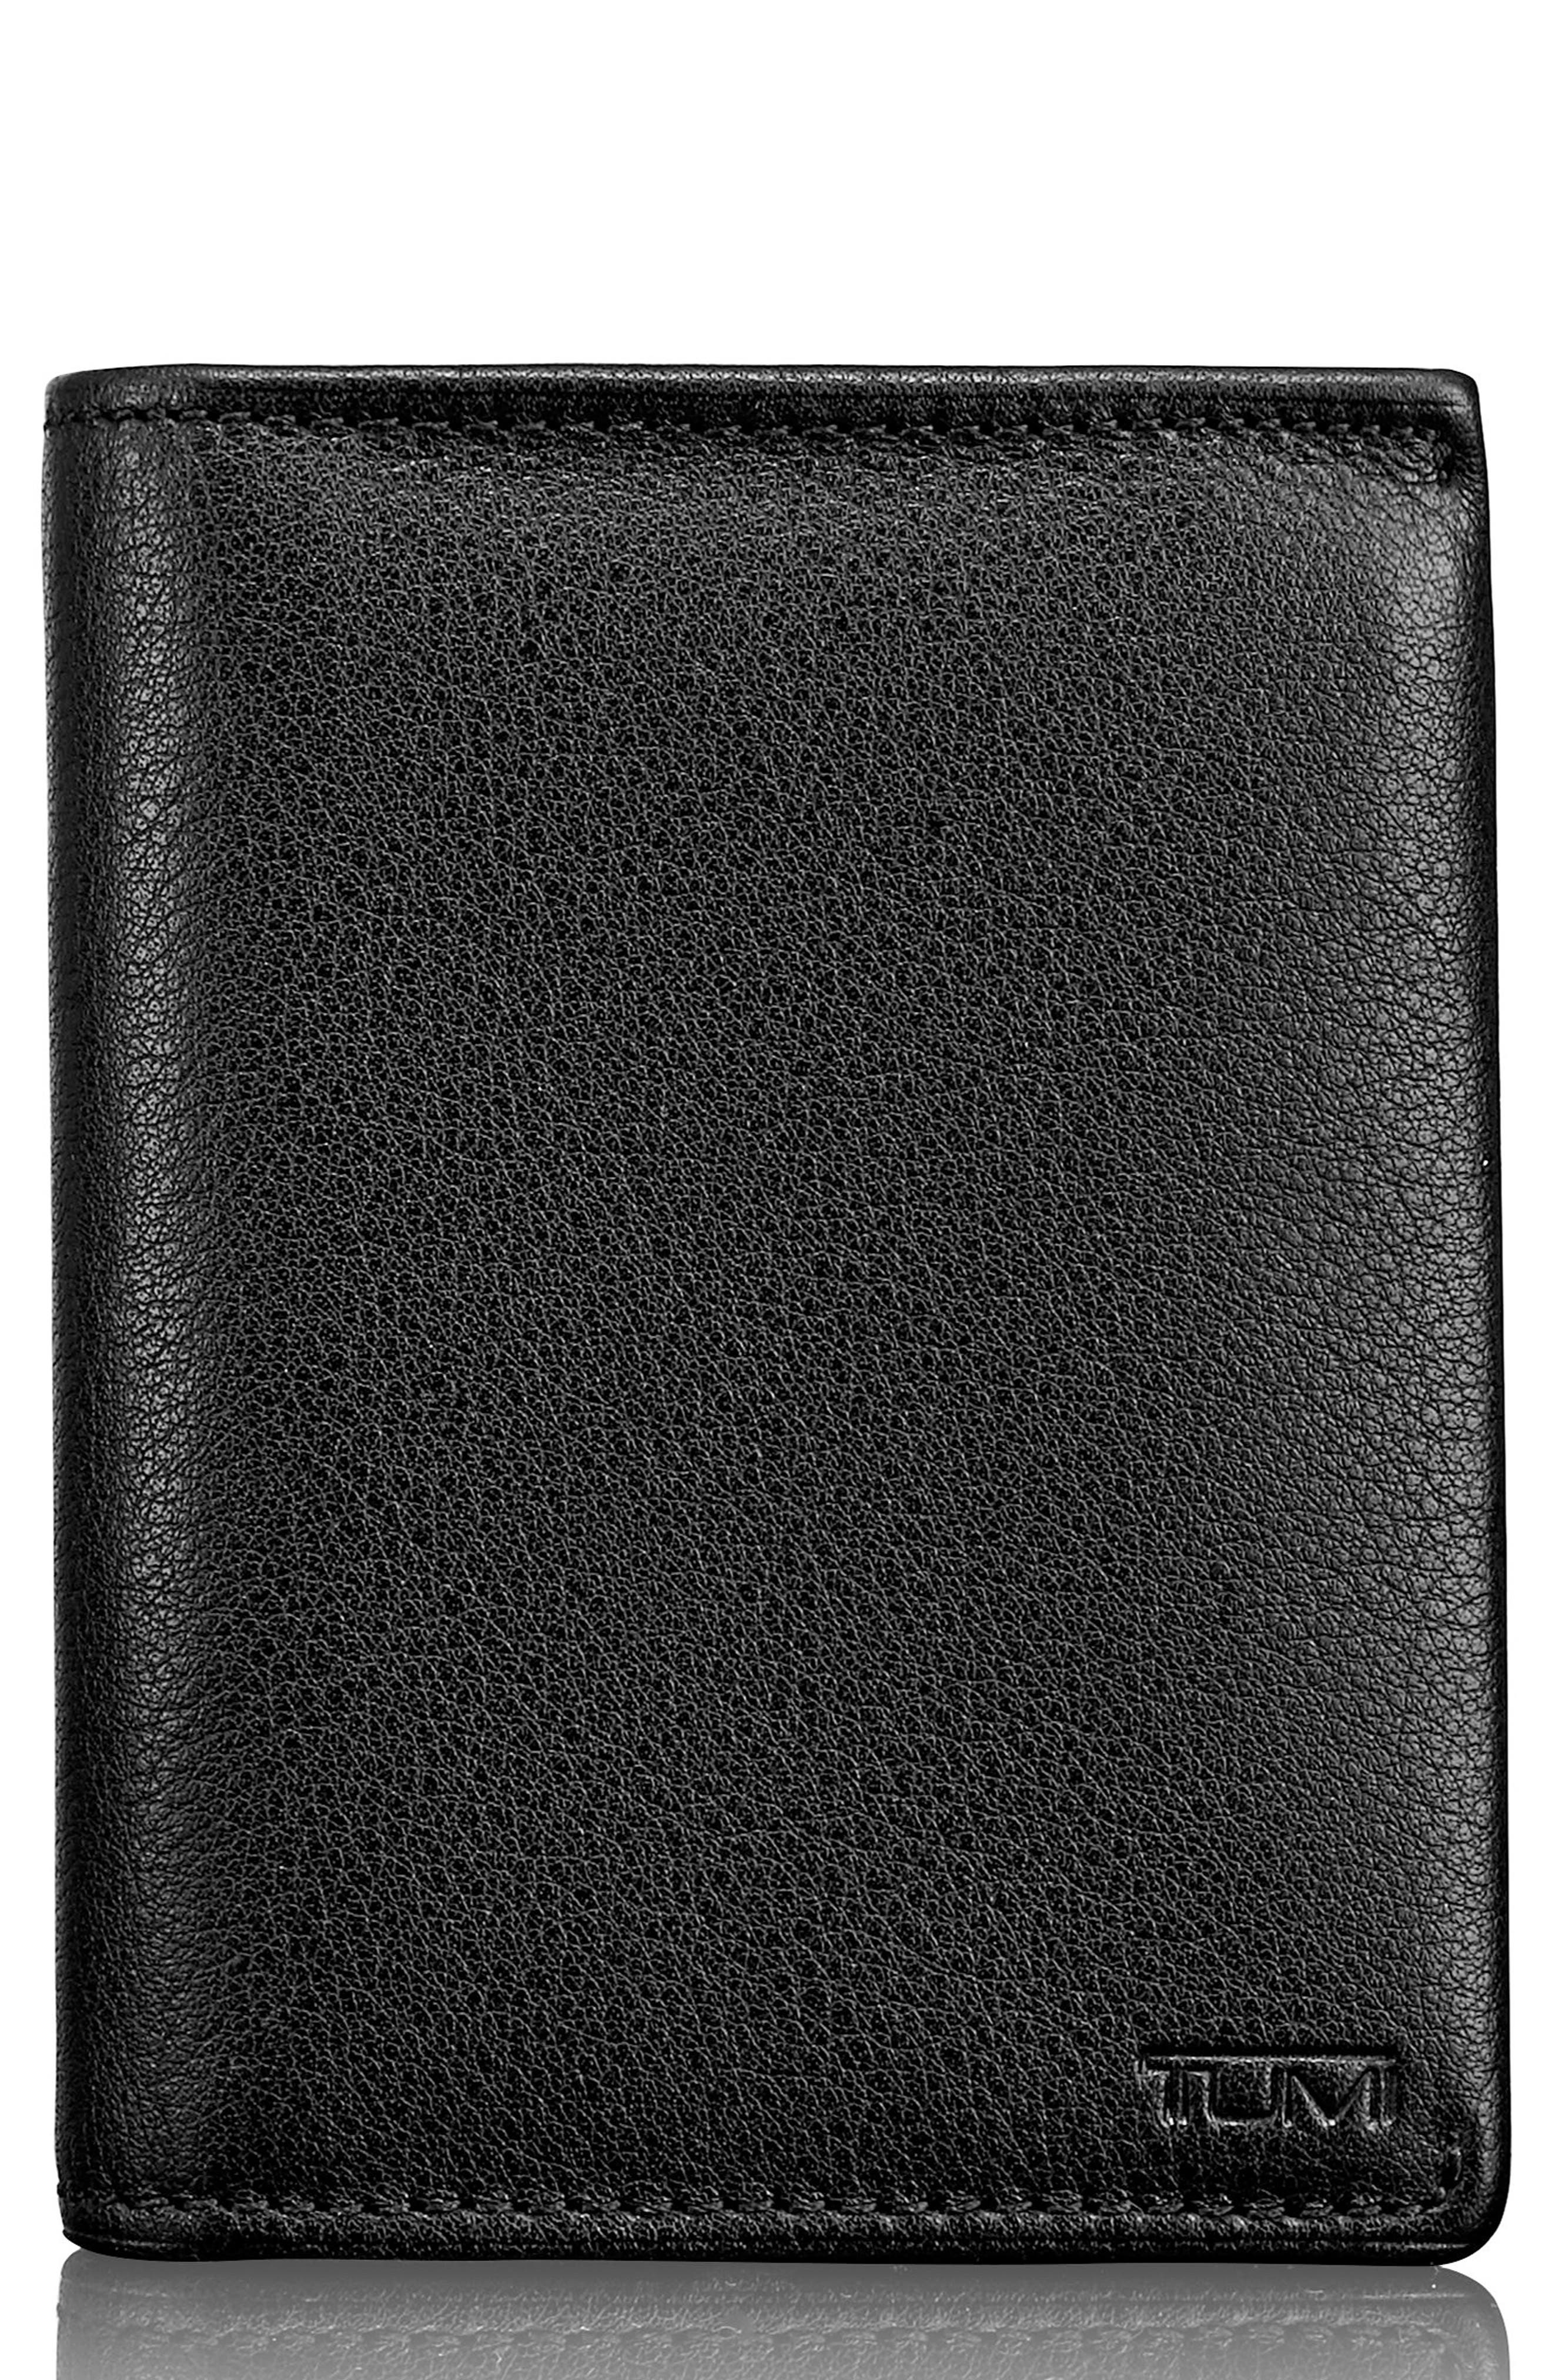 Leather L-Fold Wallet,                             Main thumbnail 1, color,                             Black Textured